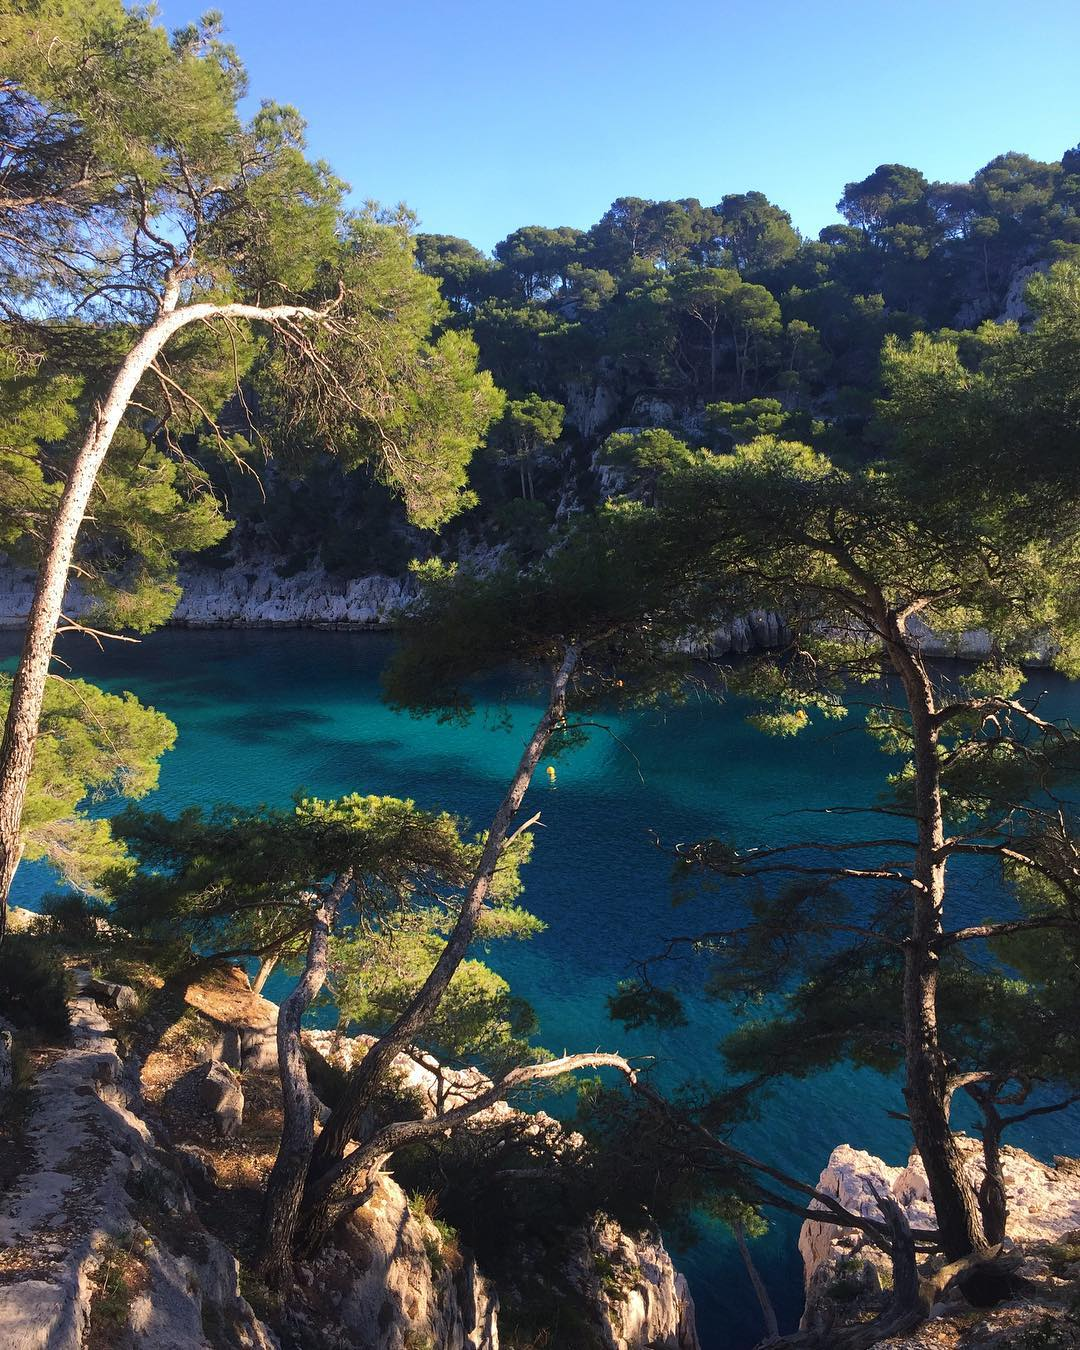 It's not ideal being far from my parents and close friends, but spending time in France I am able to reconnect with the French side of my family, and make new lifelong friends. Pic is in the Calanques National Park, in the South of France.